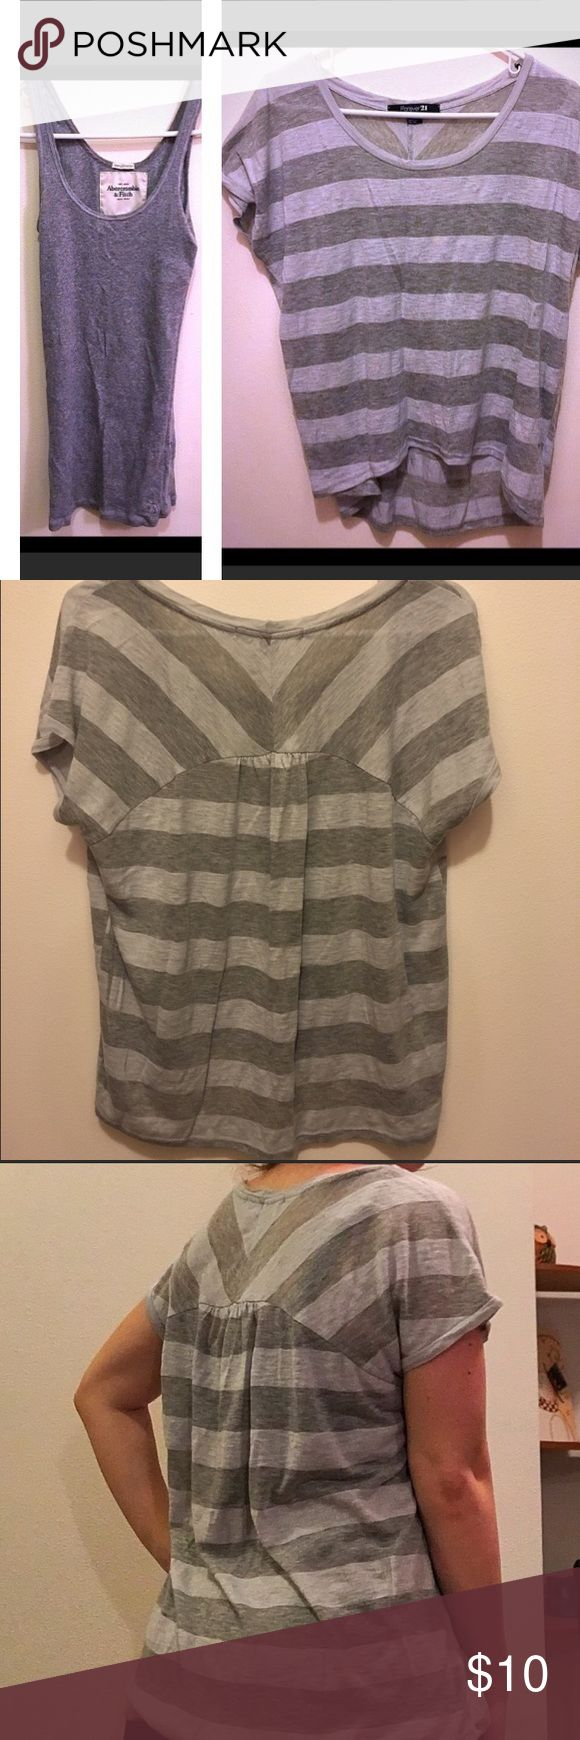 """Casual Top Bundle!!!! Two comfortable casual tops. Tank: gray ribbed stretchy Abercrombie and Fitch tank, size M. Length from shoulder to hem: 25"""". Tshirt: Forever 21 light blue and gray tee, longer in the back, size S. Both of these are insanely comfy!! Abercrombie & Fitch Tops Tees - Short Sleeve"""